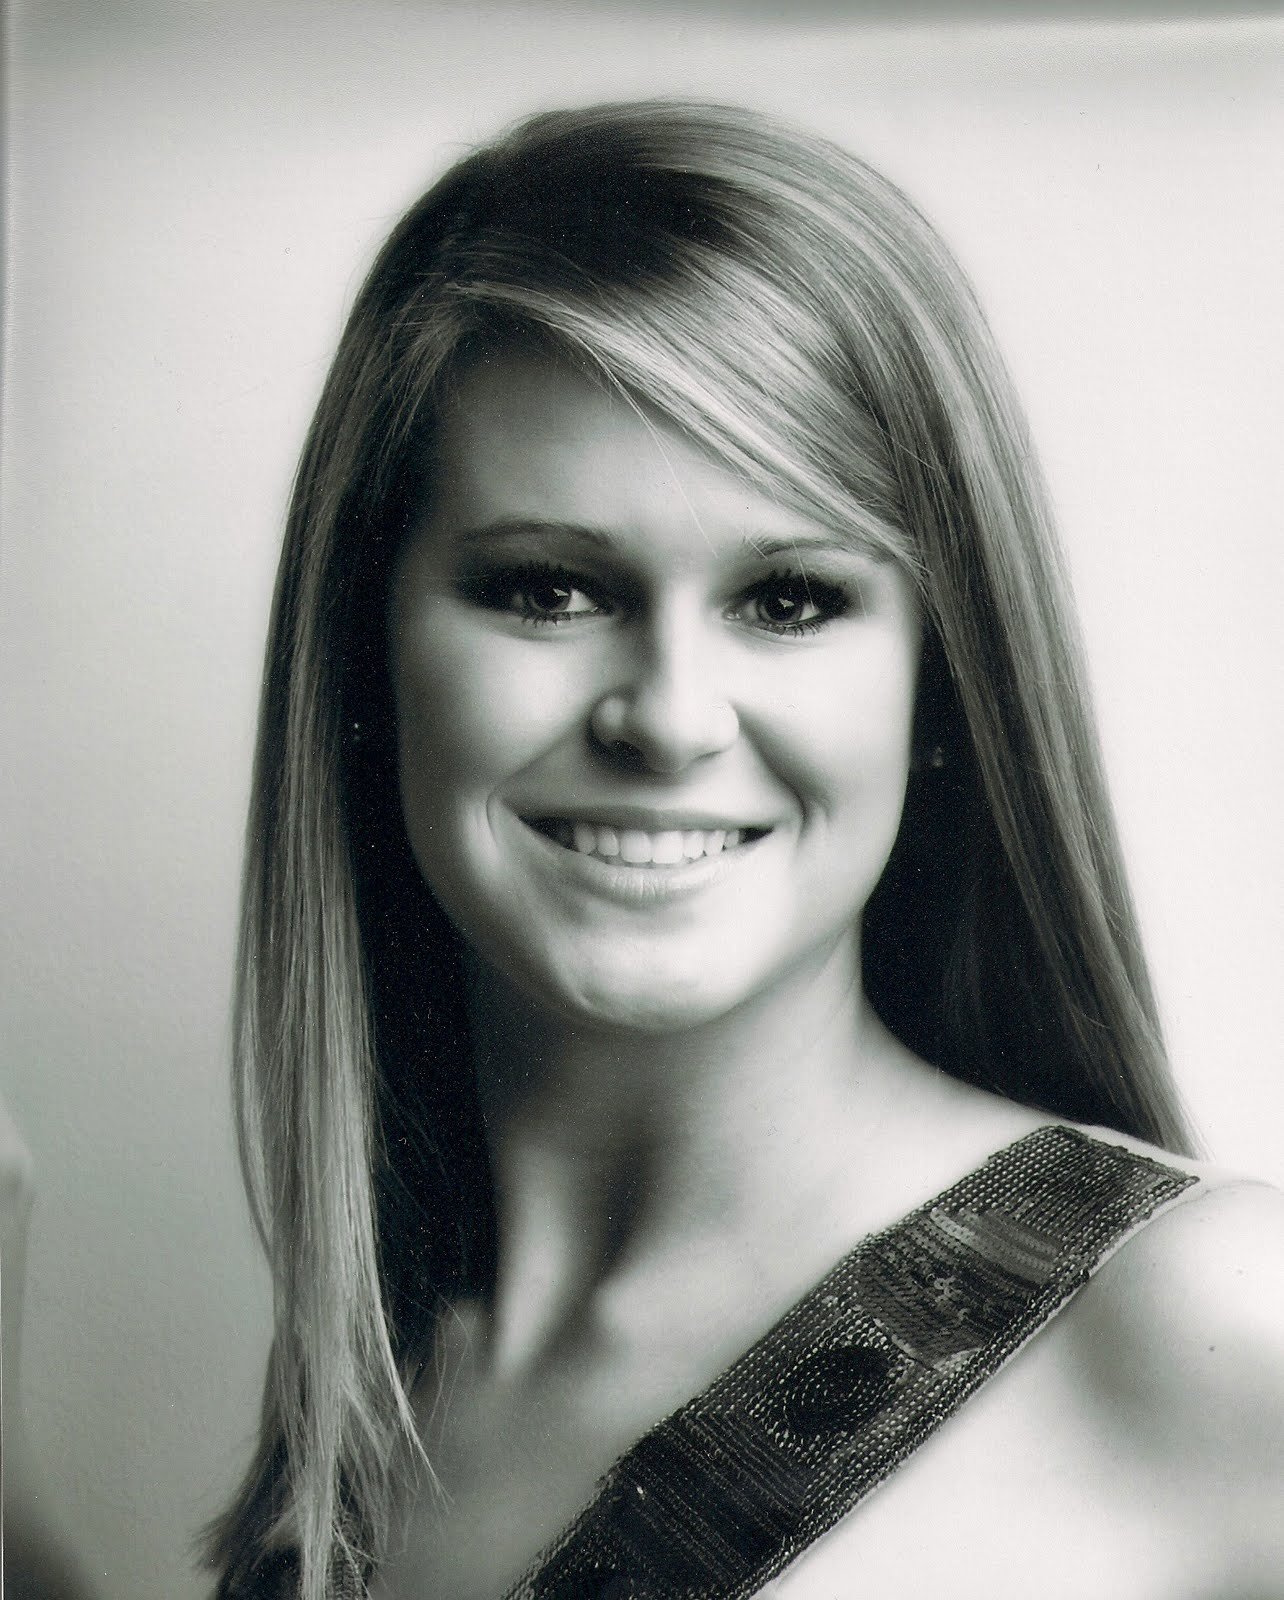 Mount will be competing in the Miss Teen division, ...